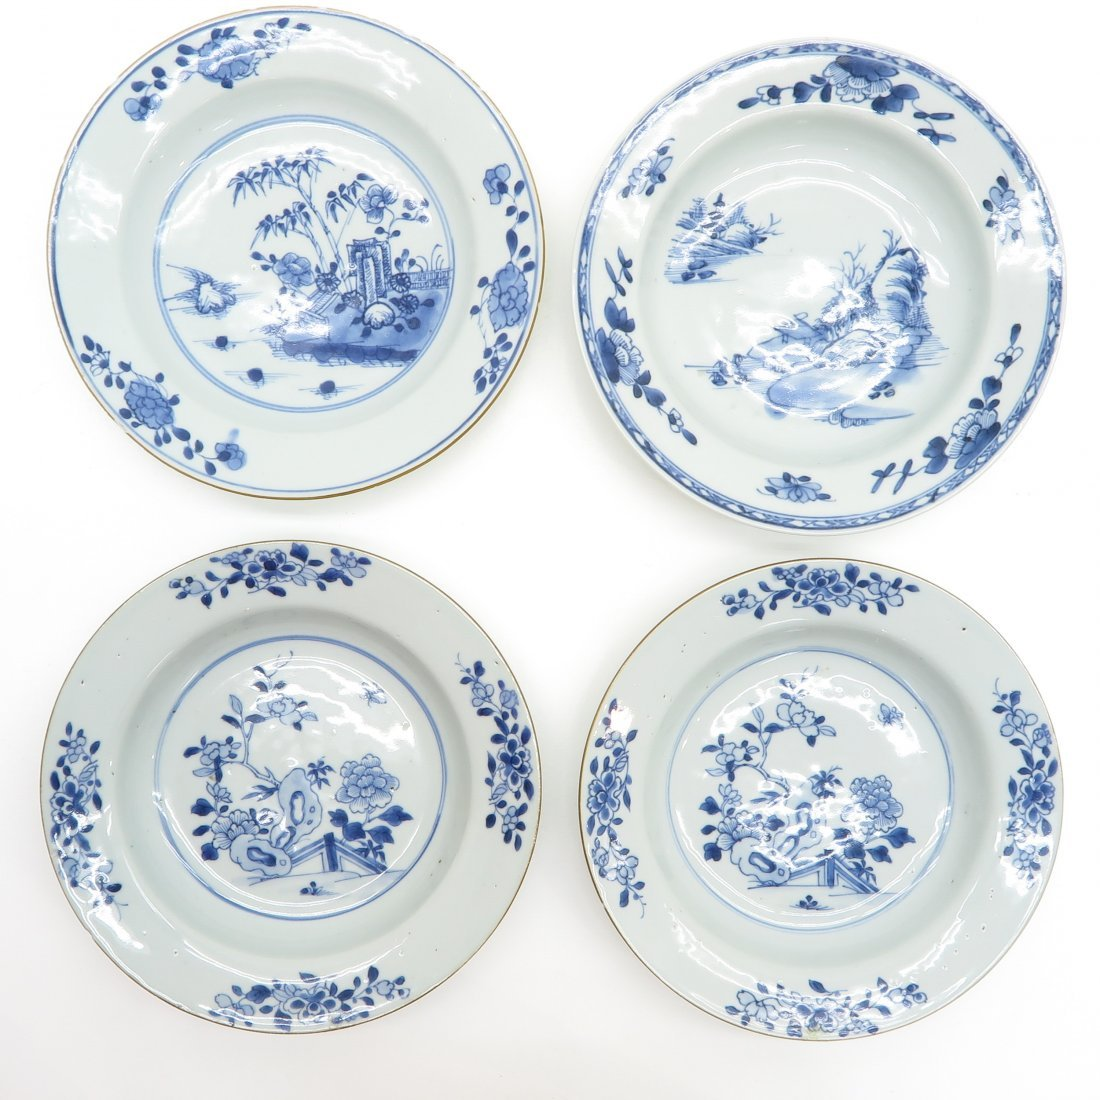 Lot of 4 18th Century China Porcelain Plates